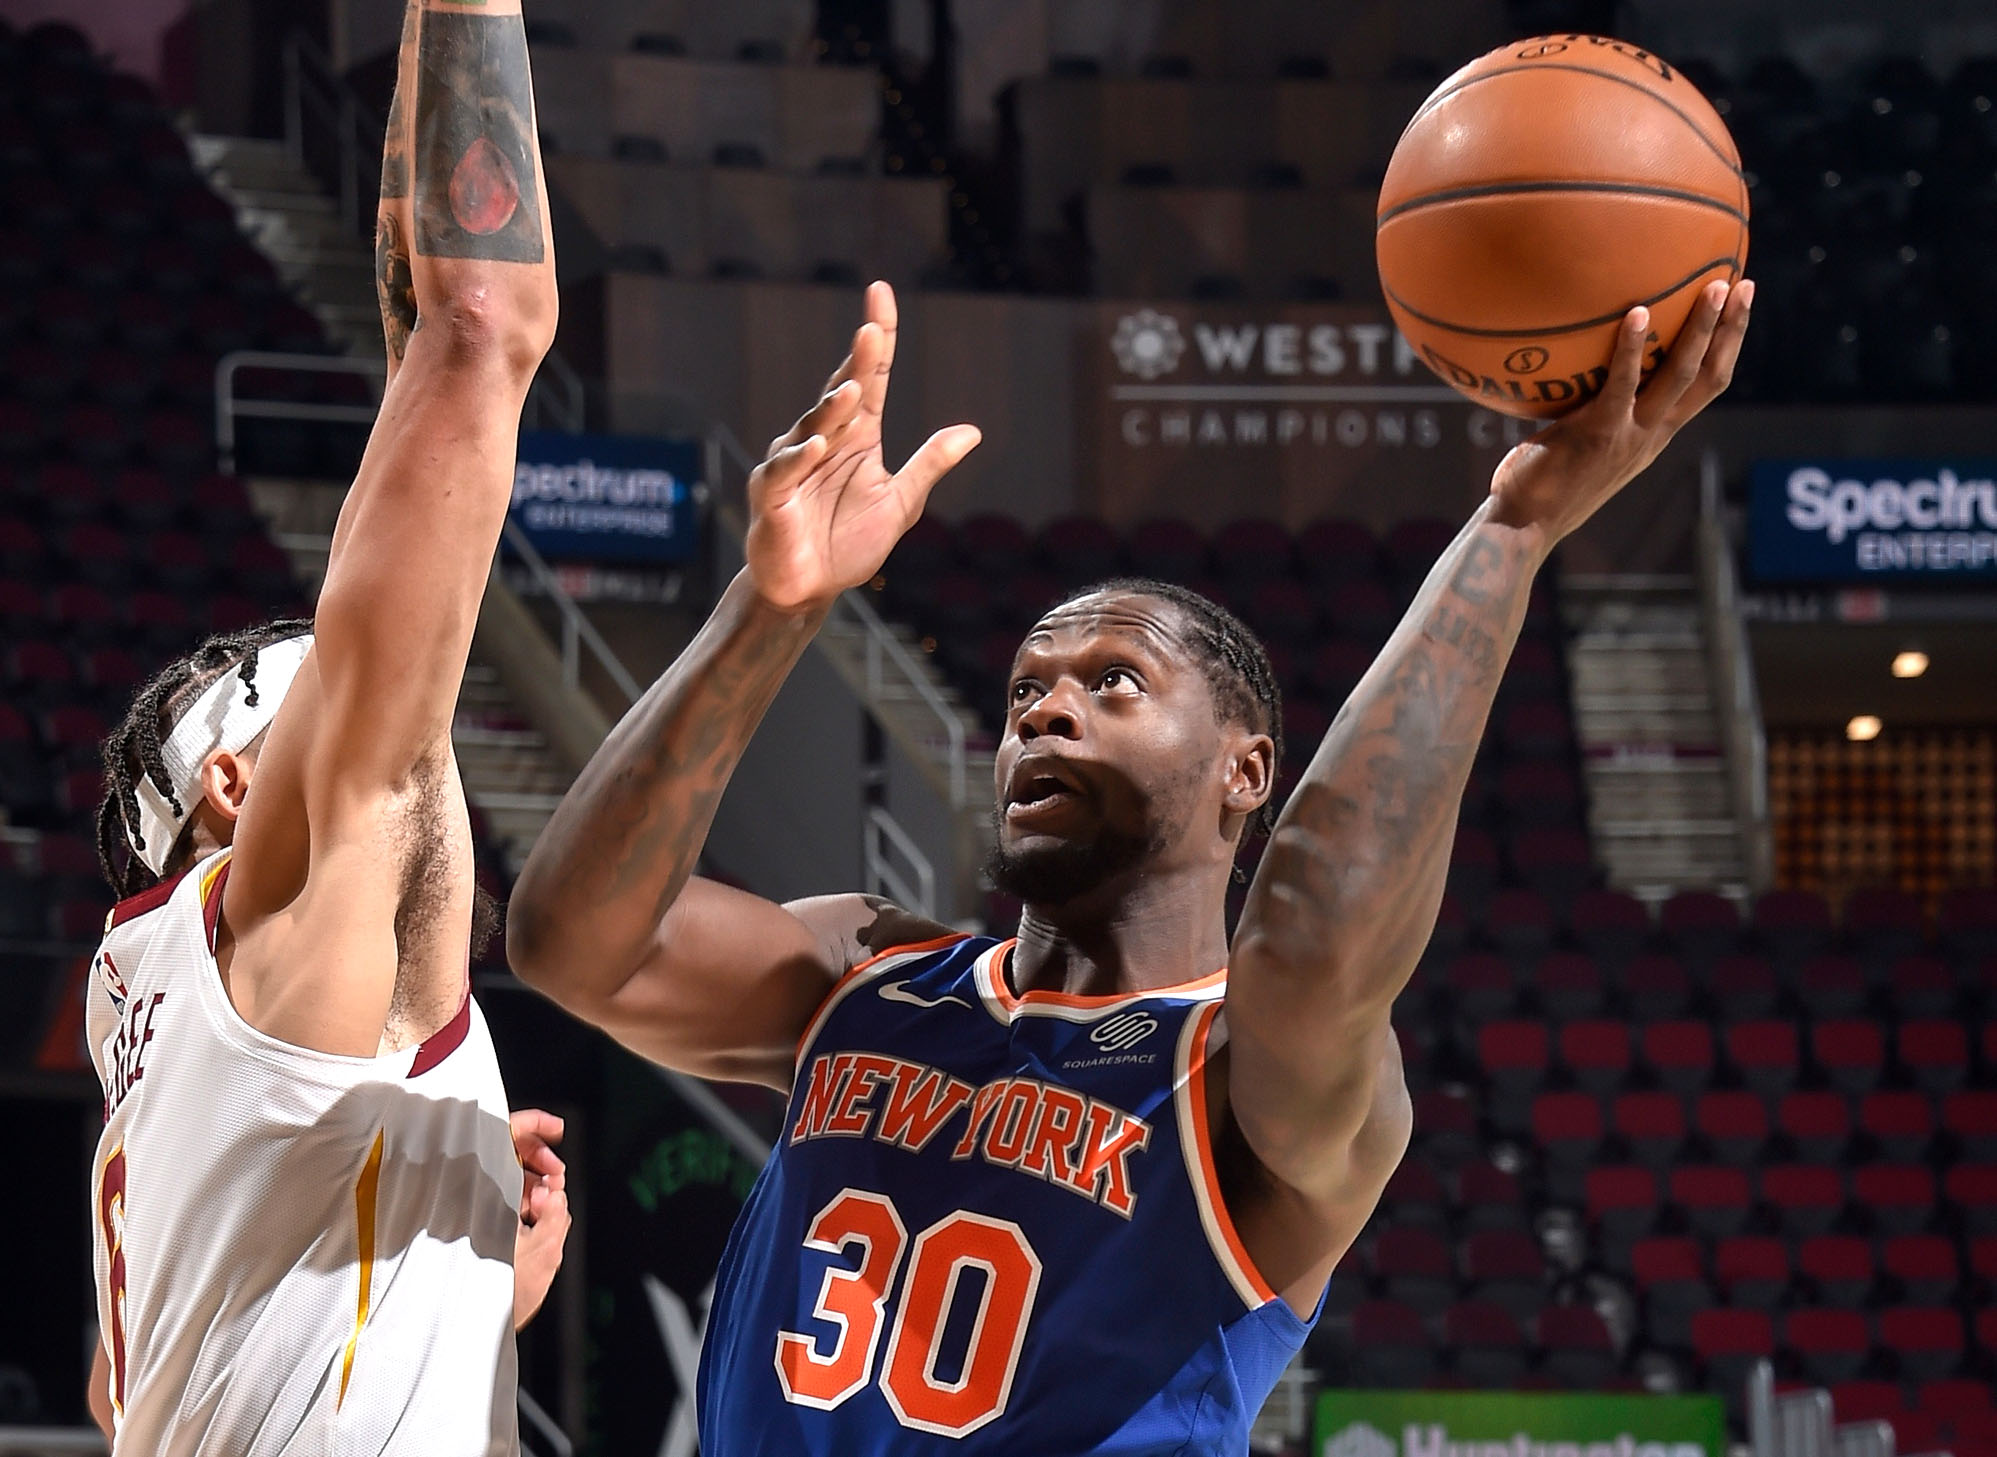 Julius Randle's triple-double propels Knicks to second consecutive win